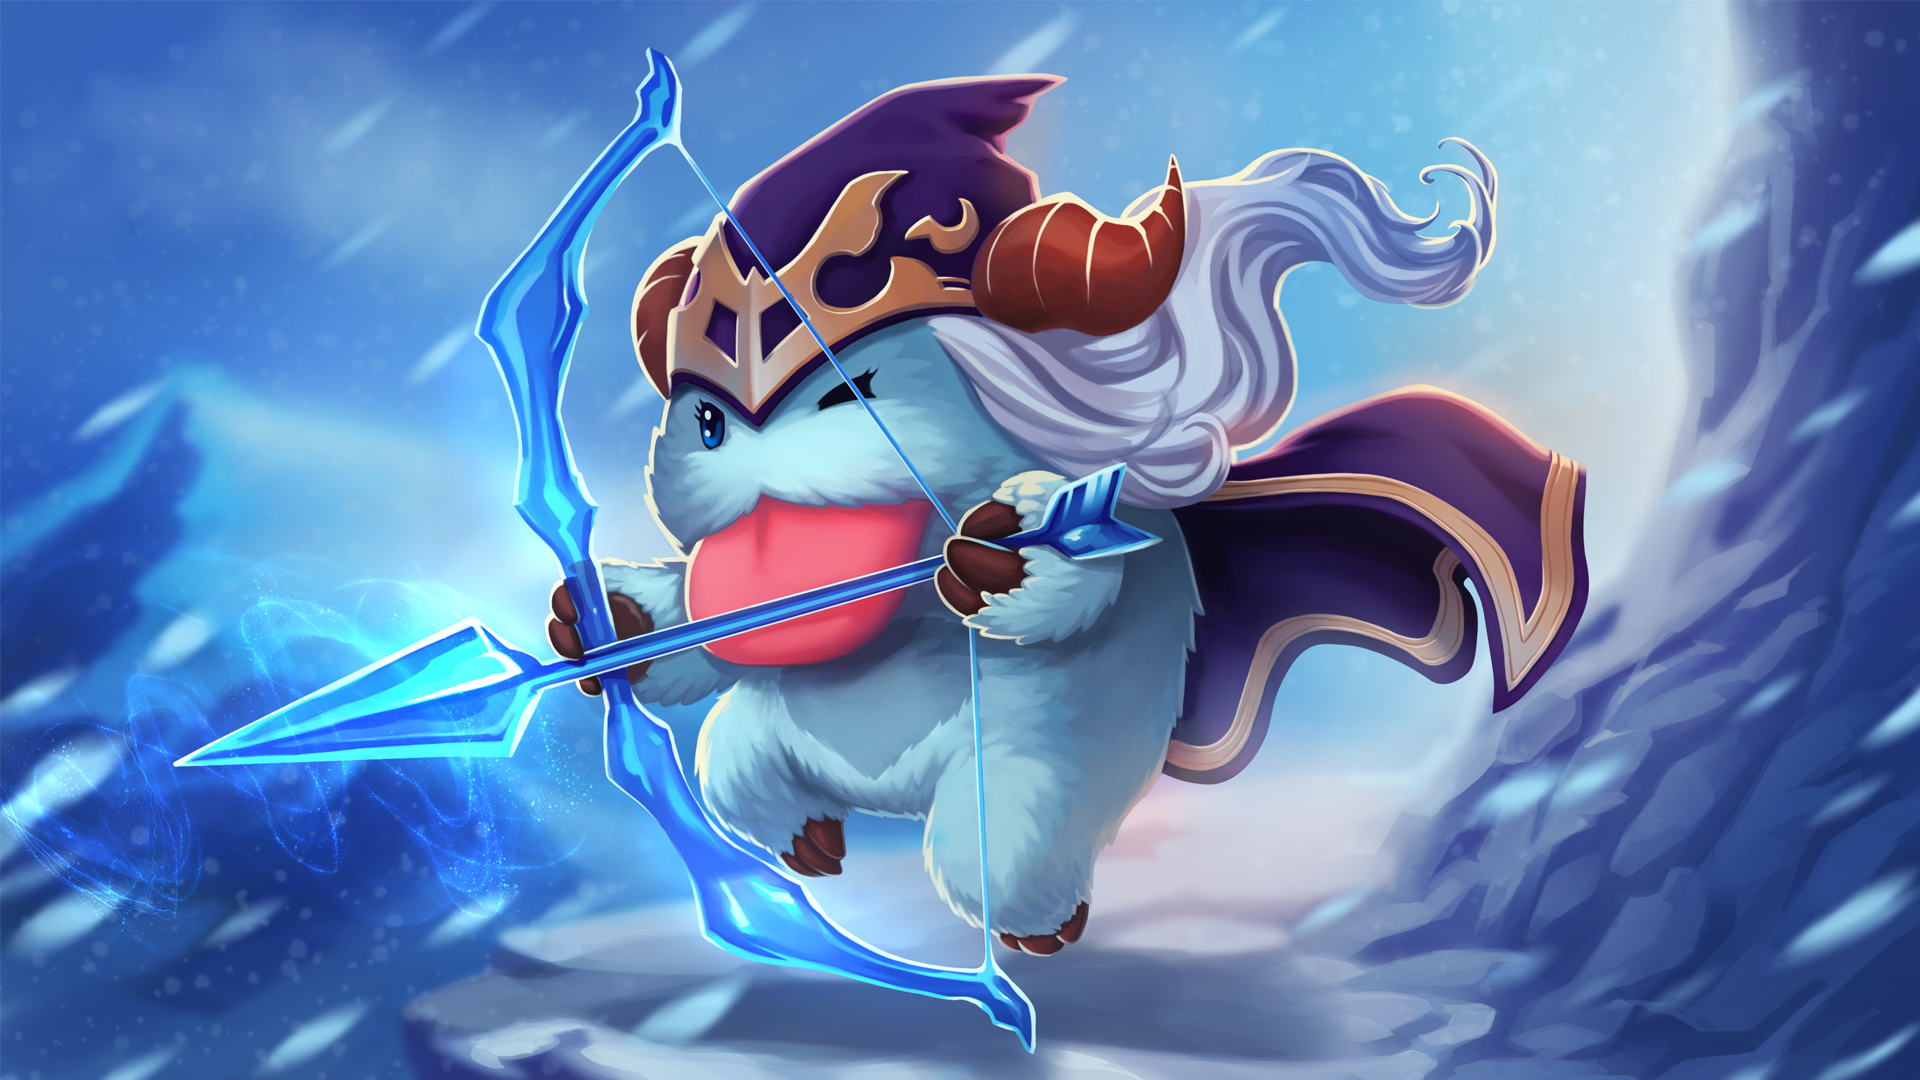 Ashe Poro wallpaper